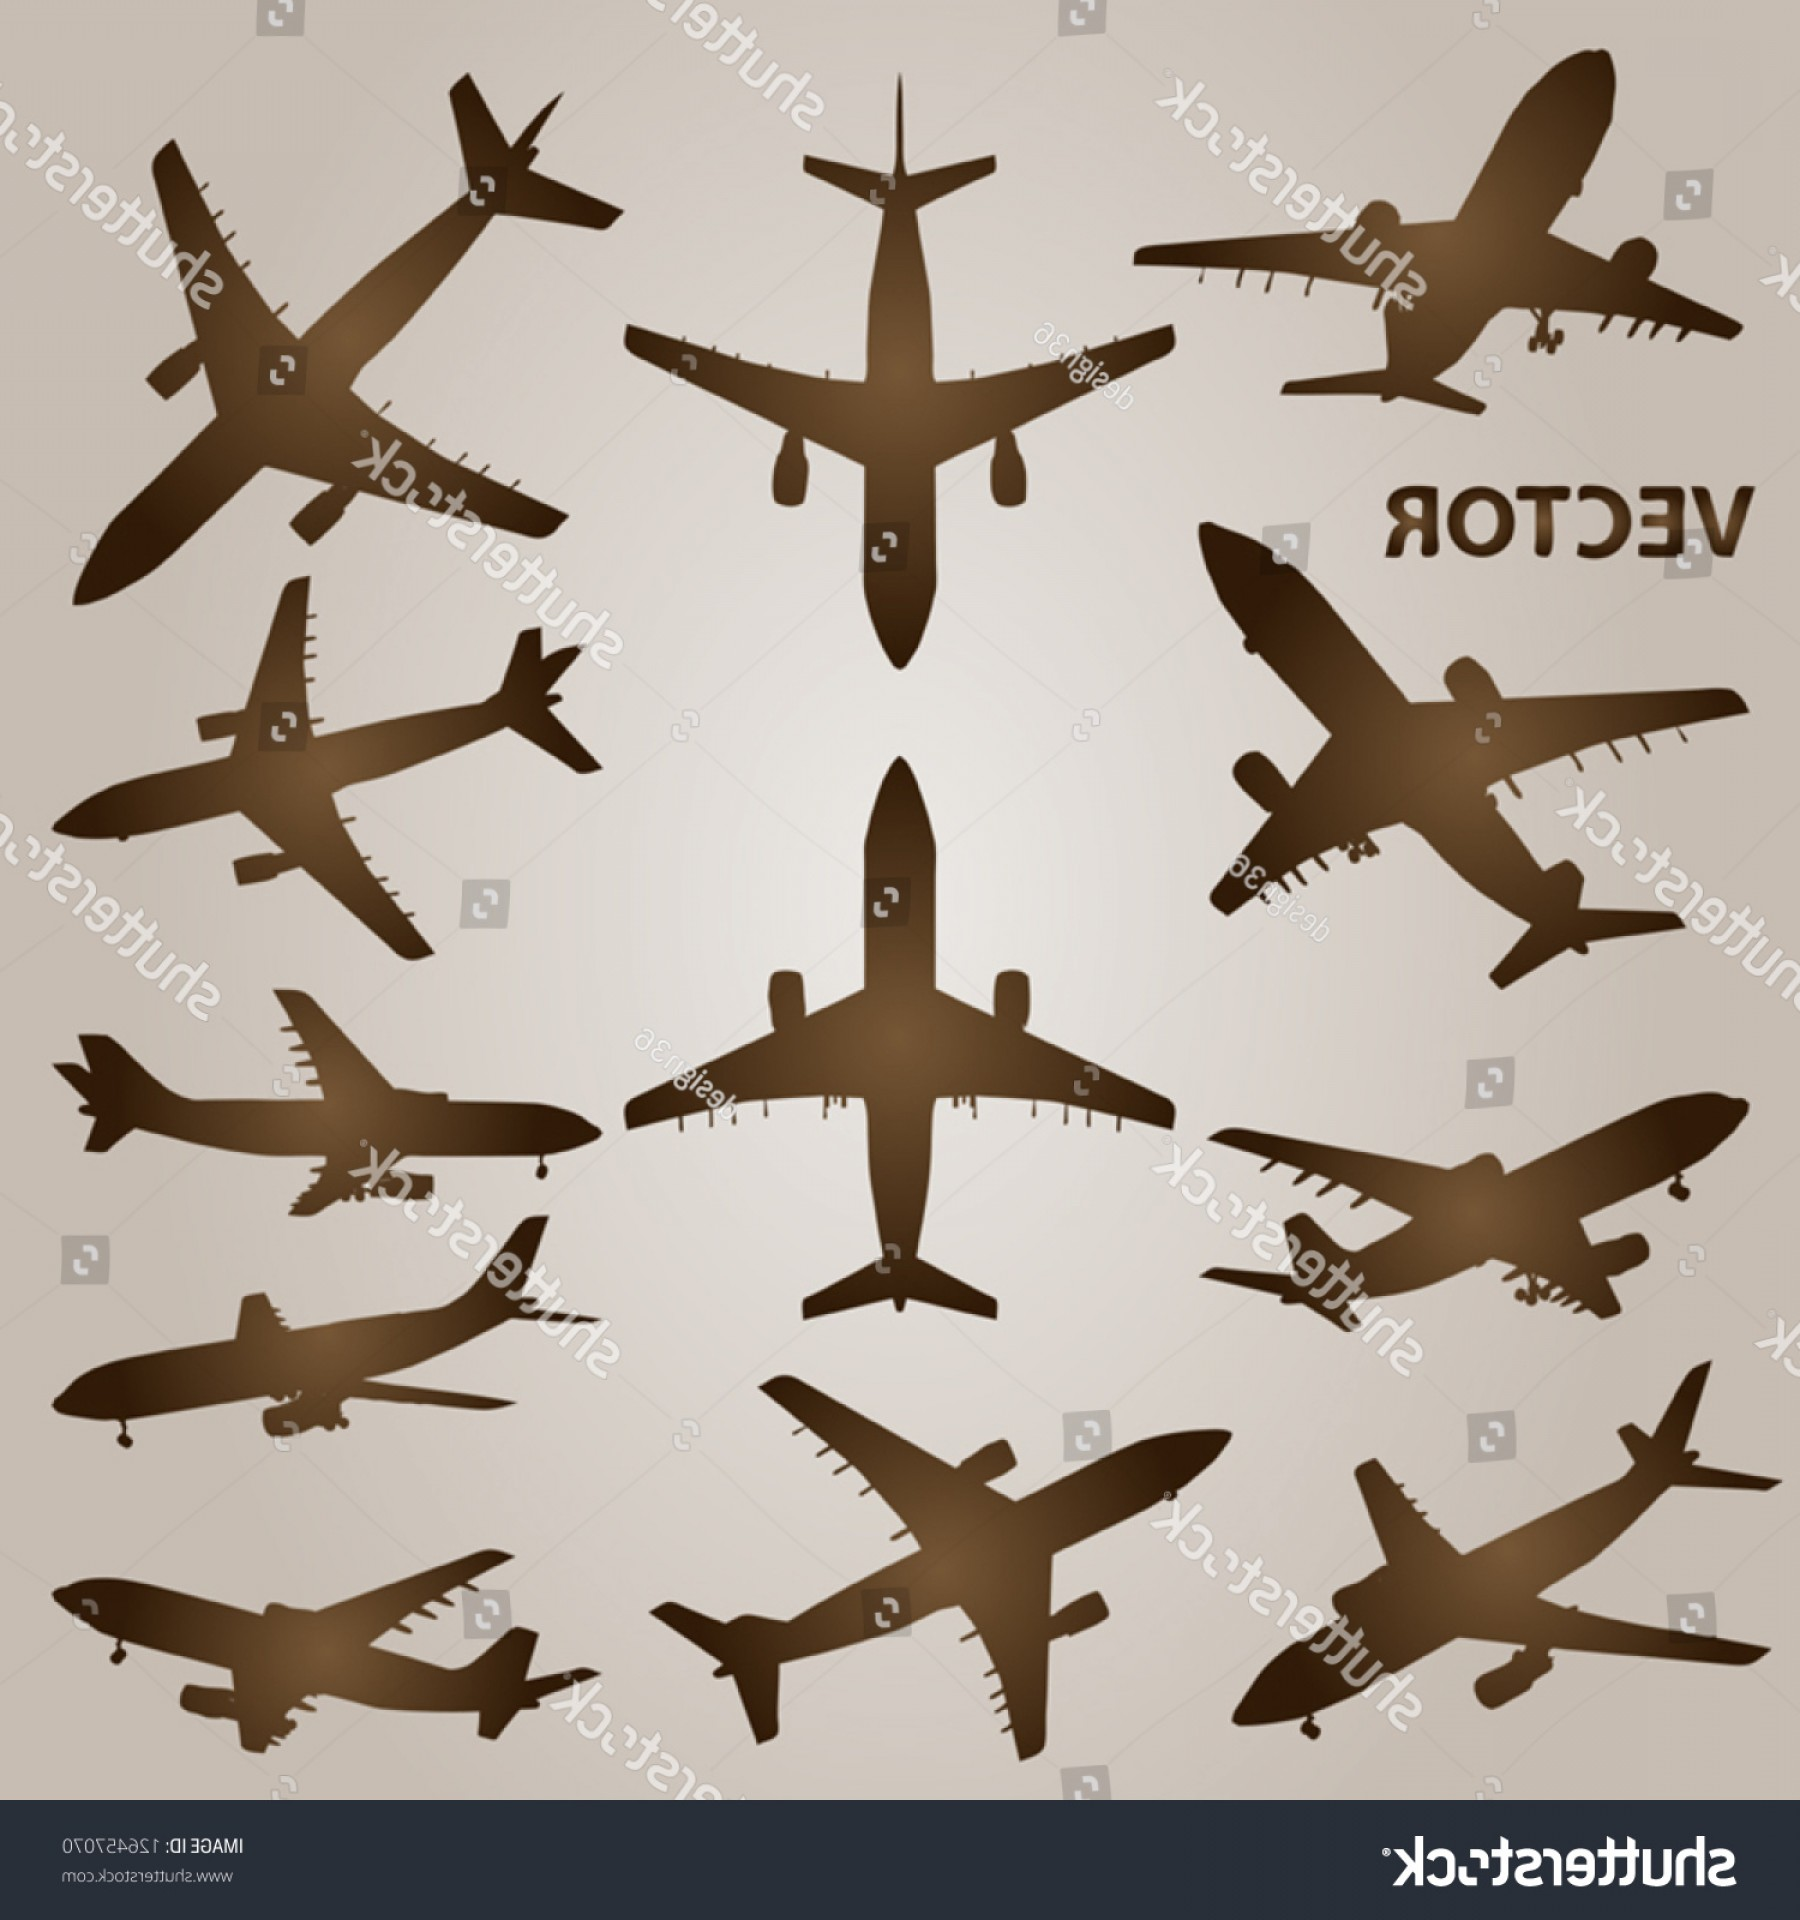 Old School Airplane Fighter Silhouette Vector: Vector Vintage Old Set Brown Planes